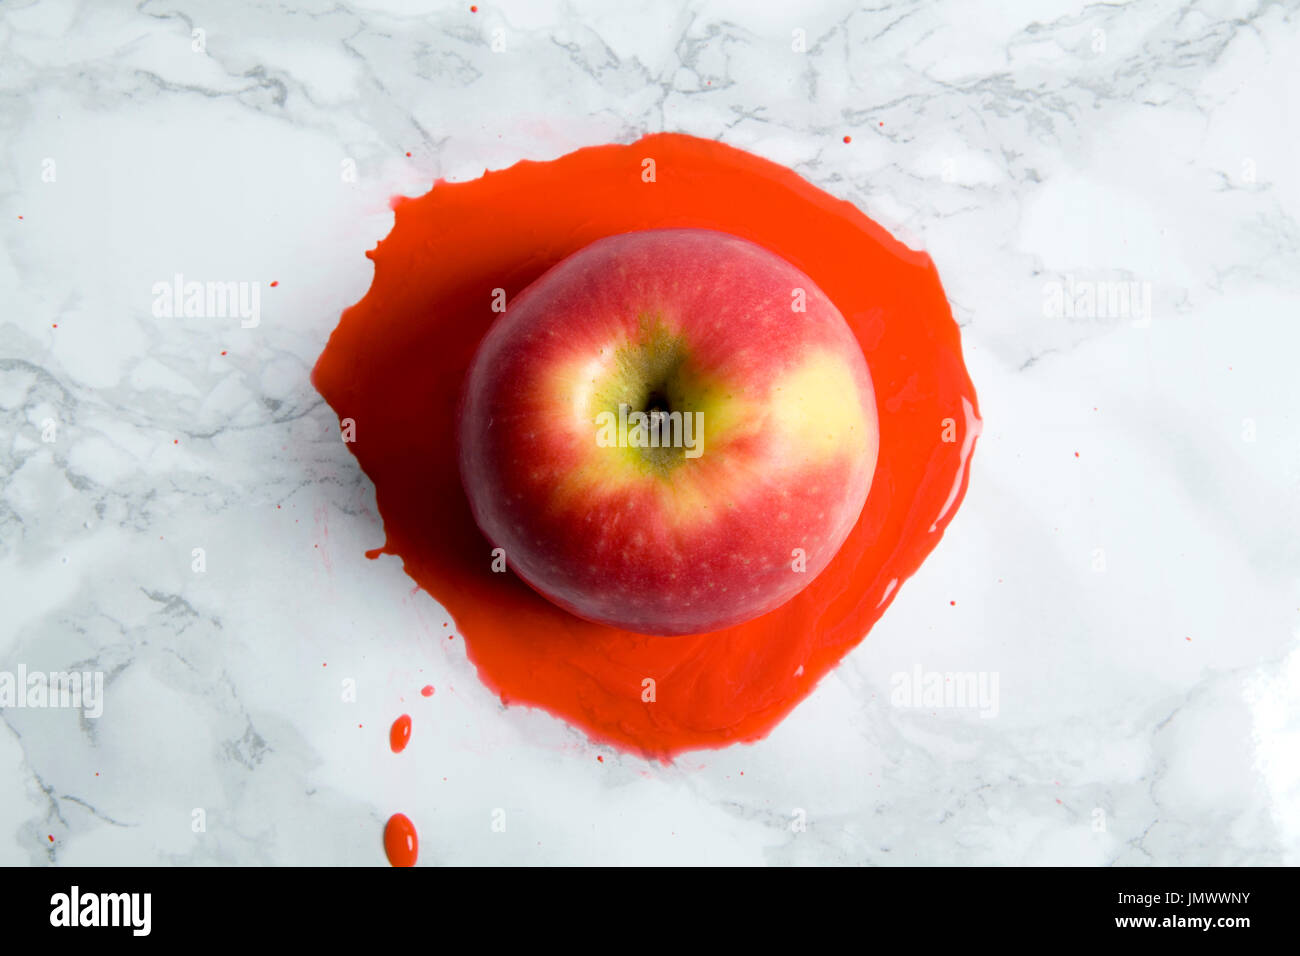 An apple melting on a marble background. minimal color still life photography - Stock Image